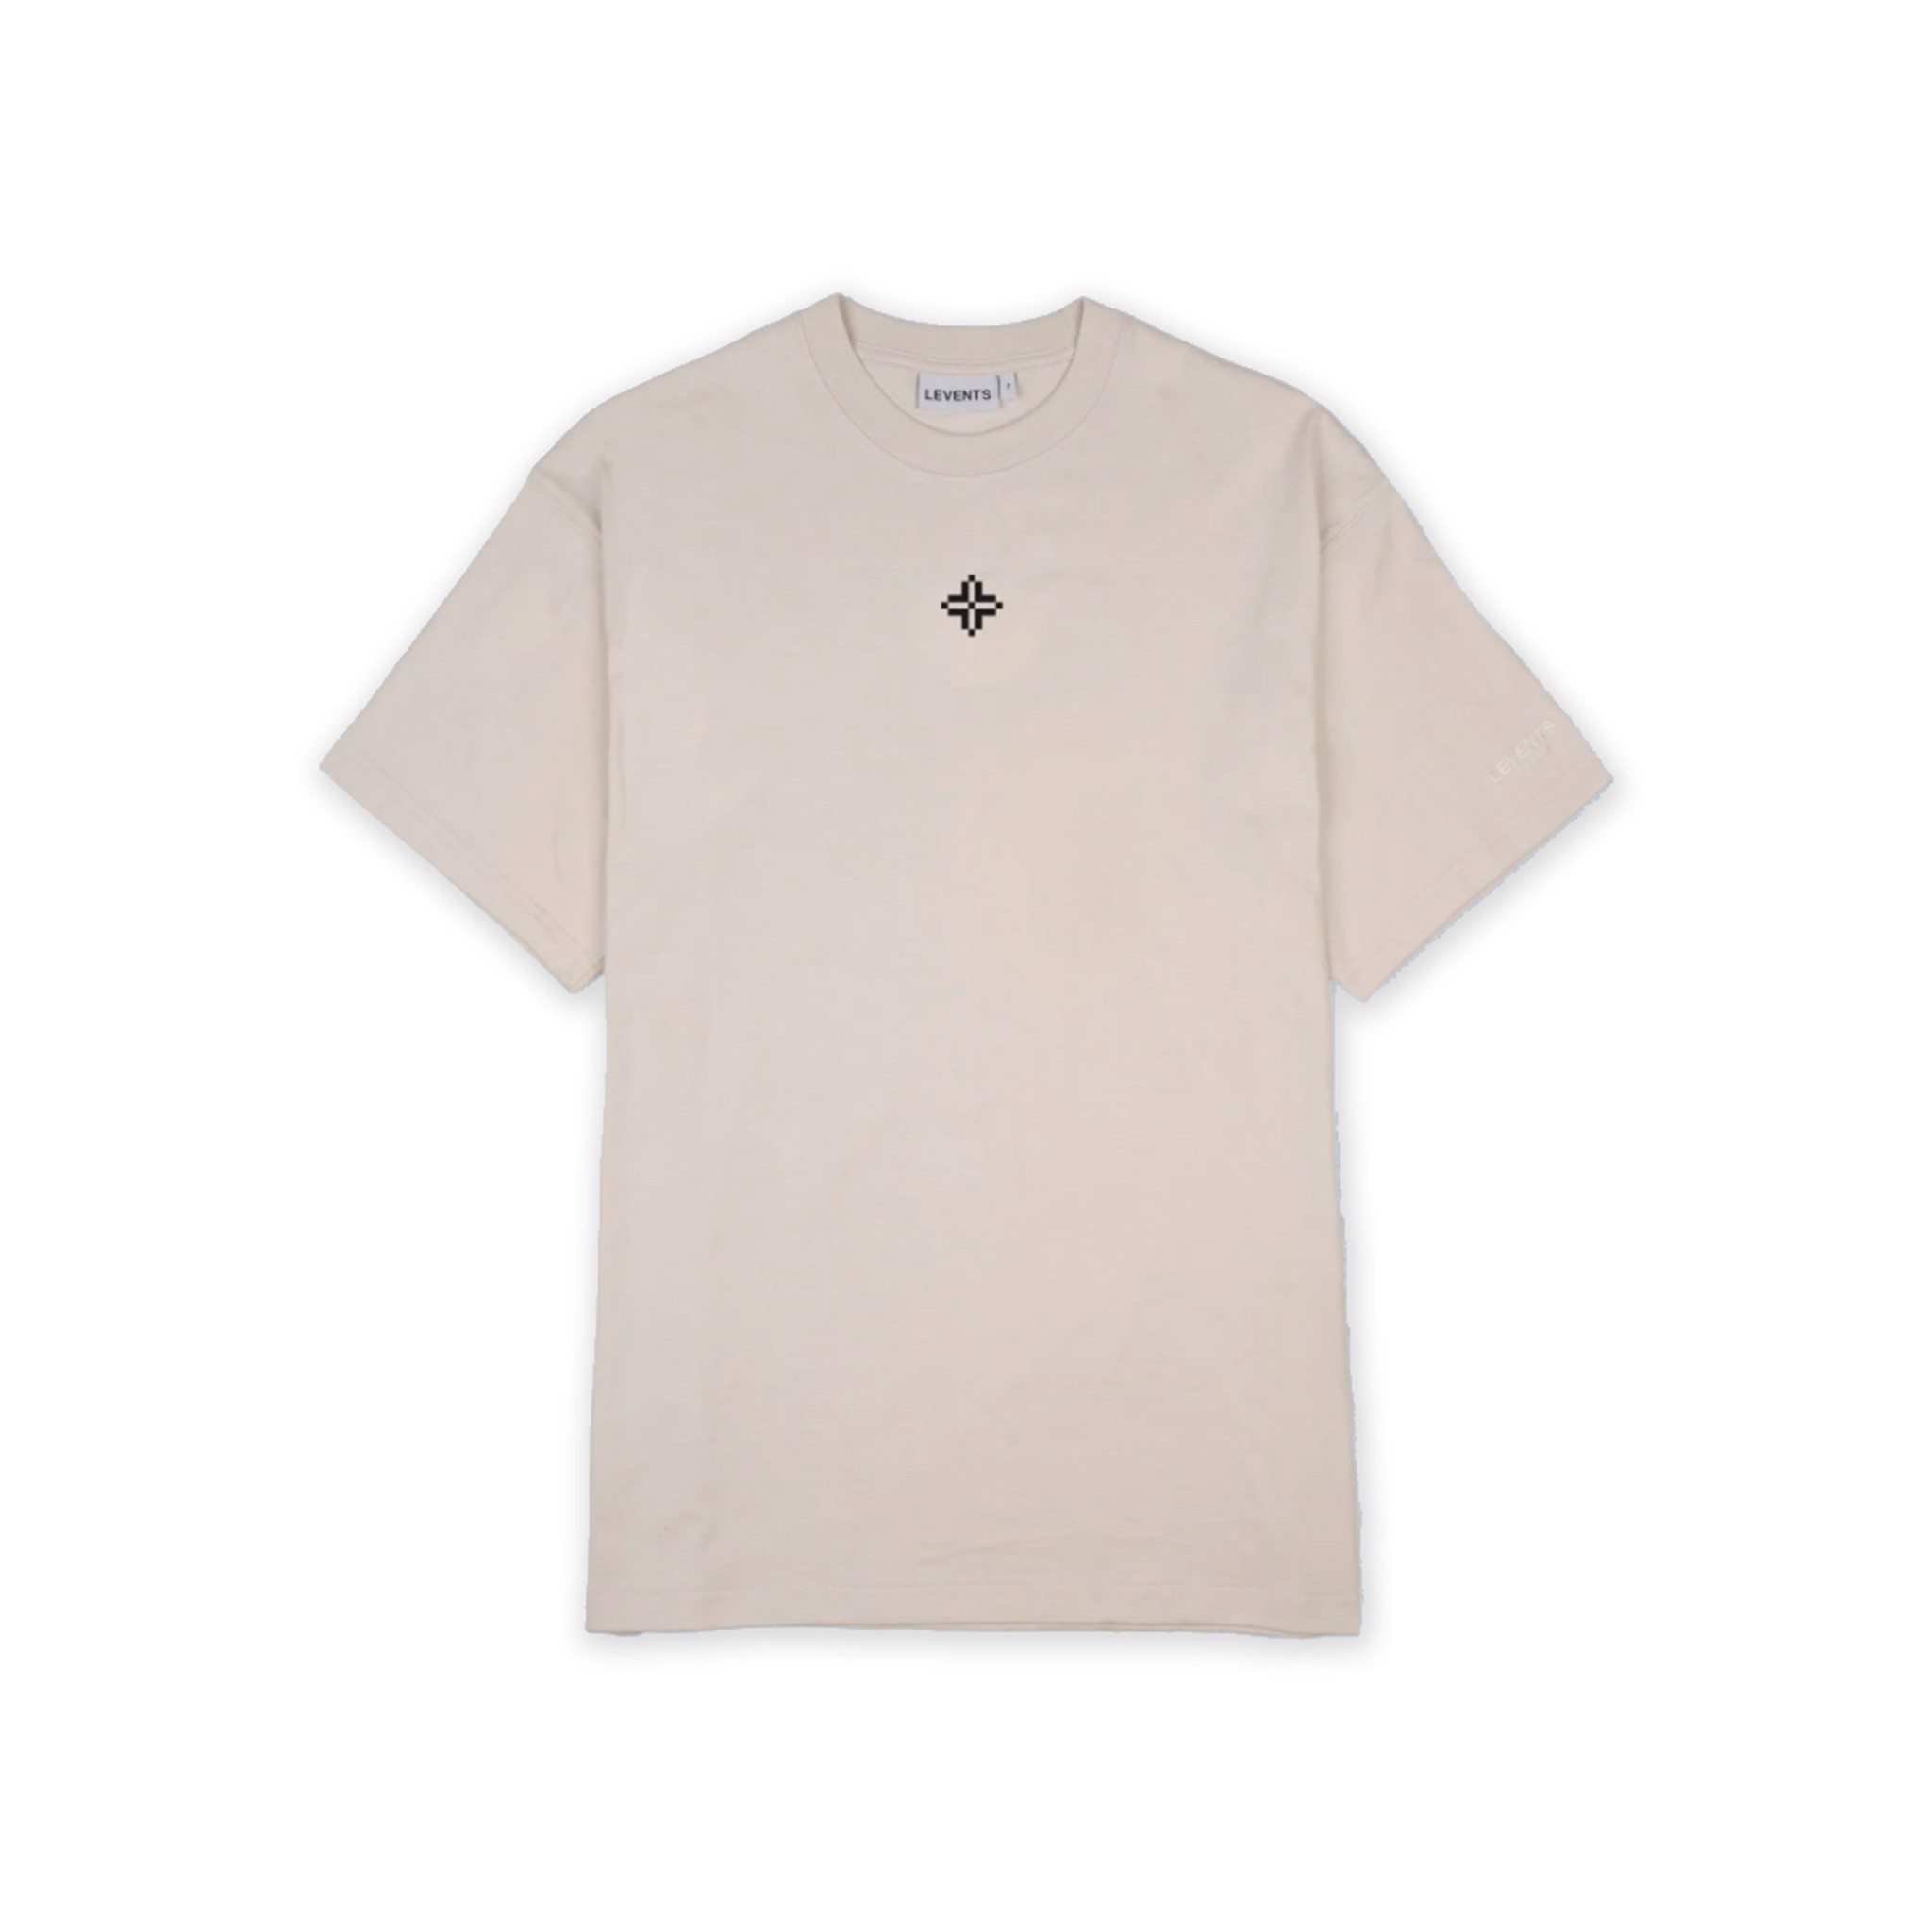 LVS XL LOGO TEE - BROWN/BLACK